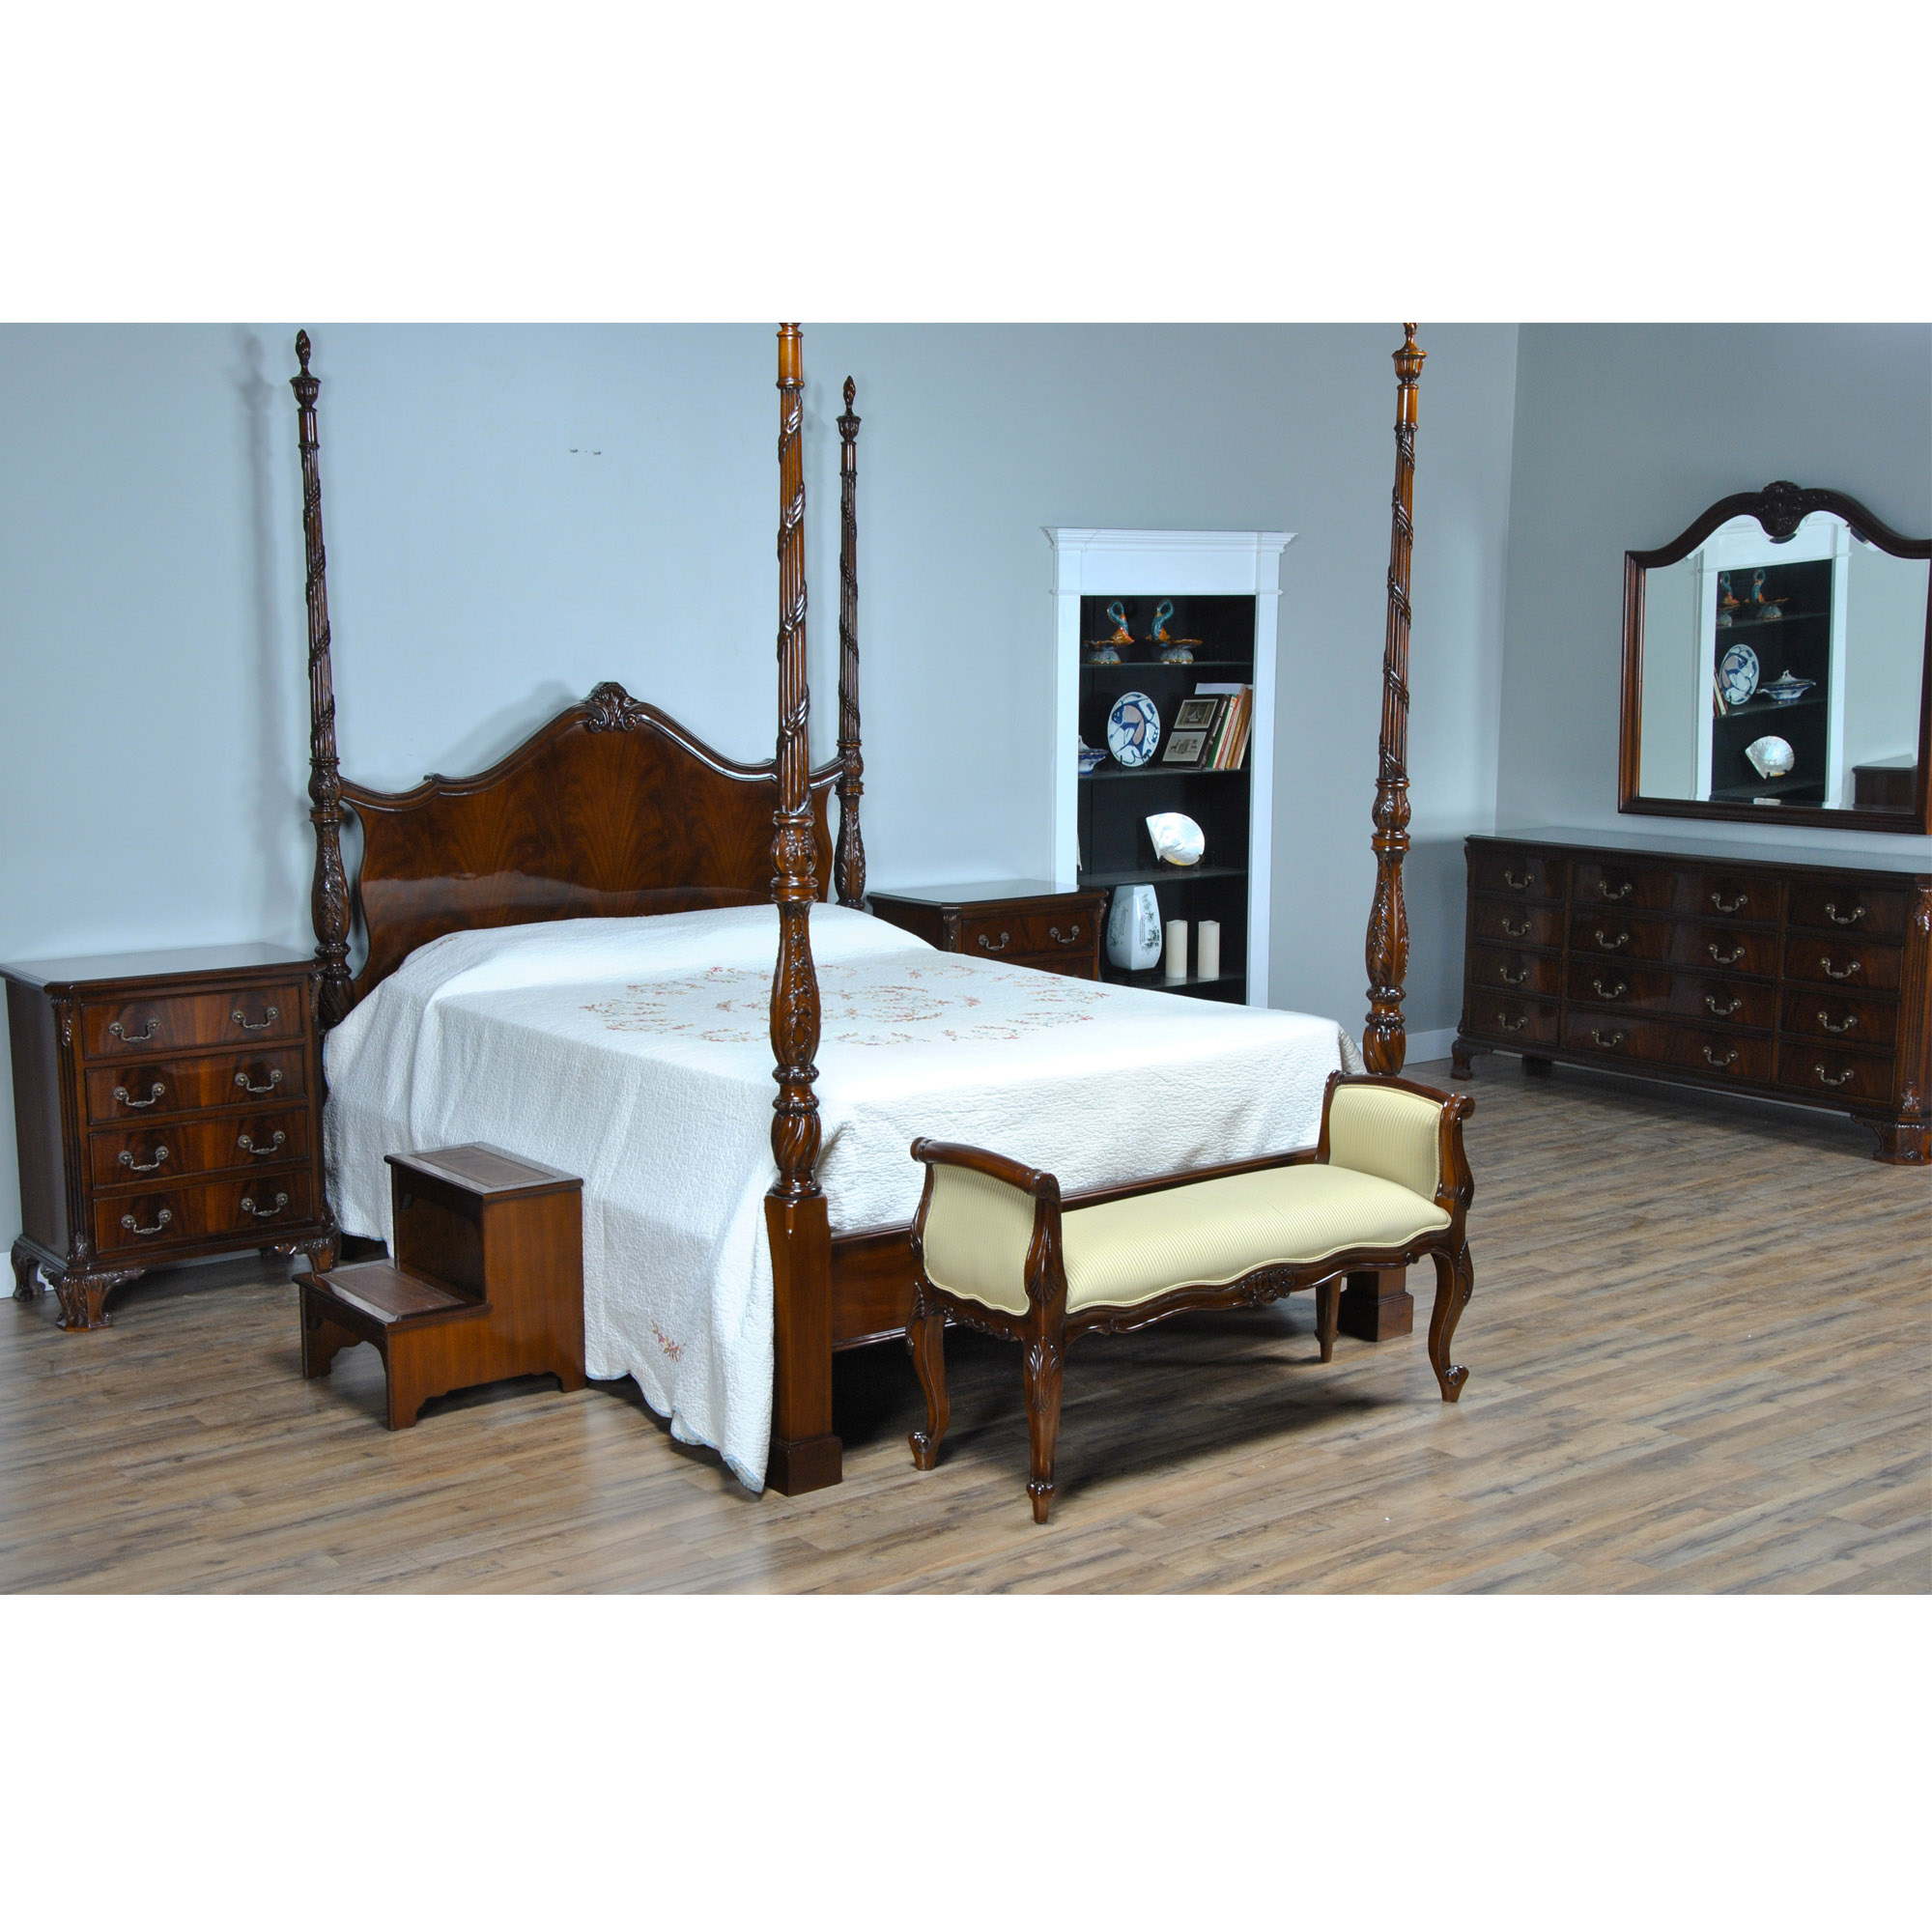 Four Poster Queen Bed Mahogany Queen Size Four Poster Bed Nbr019q